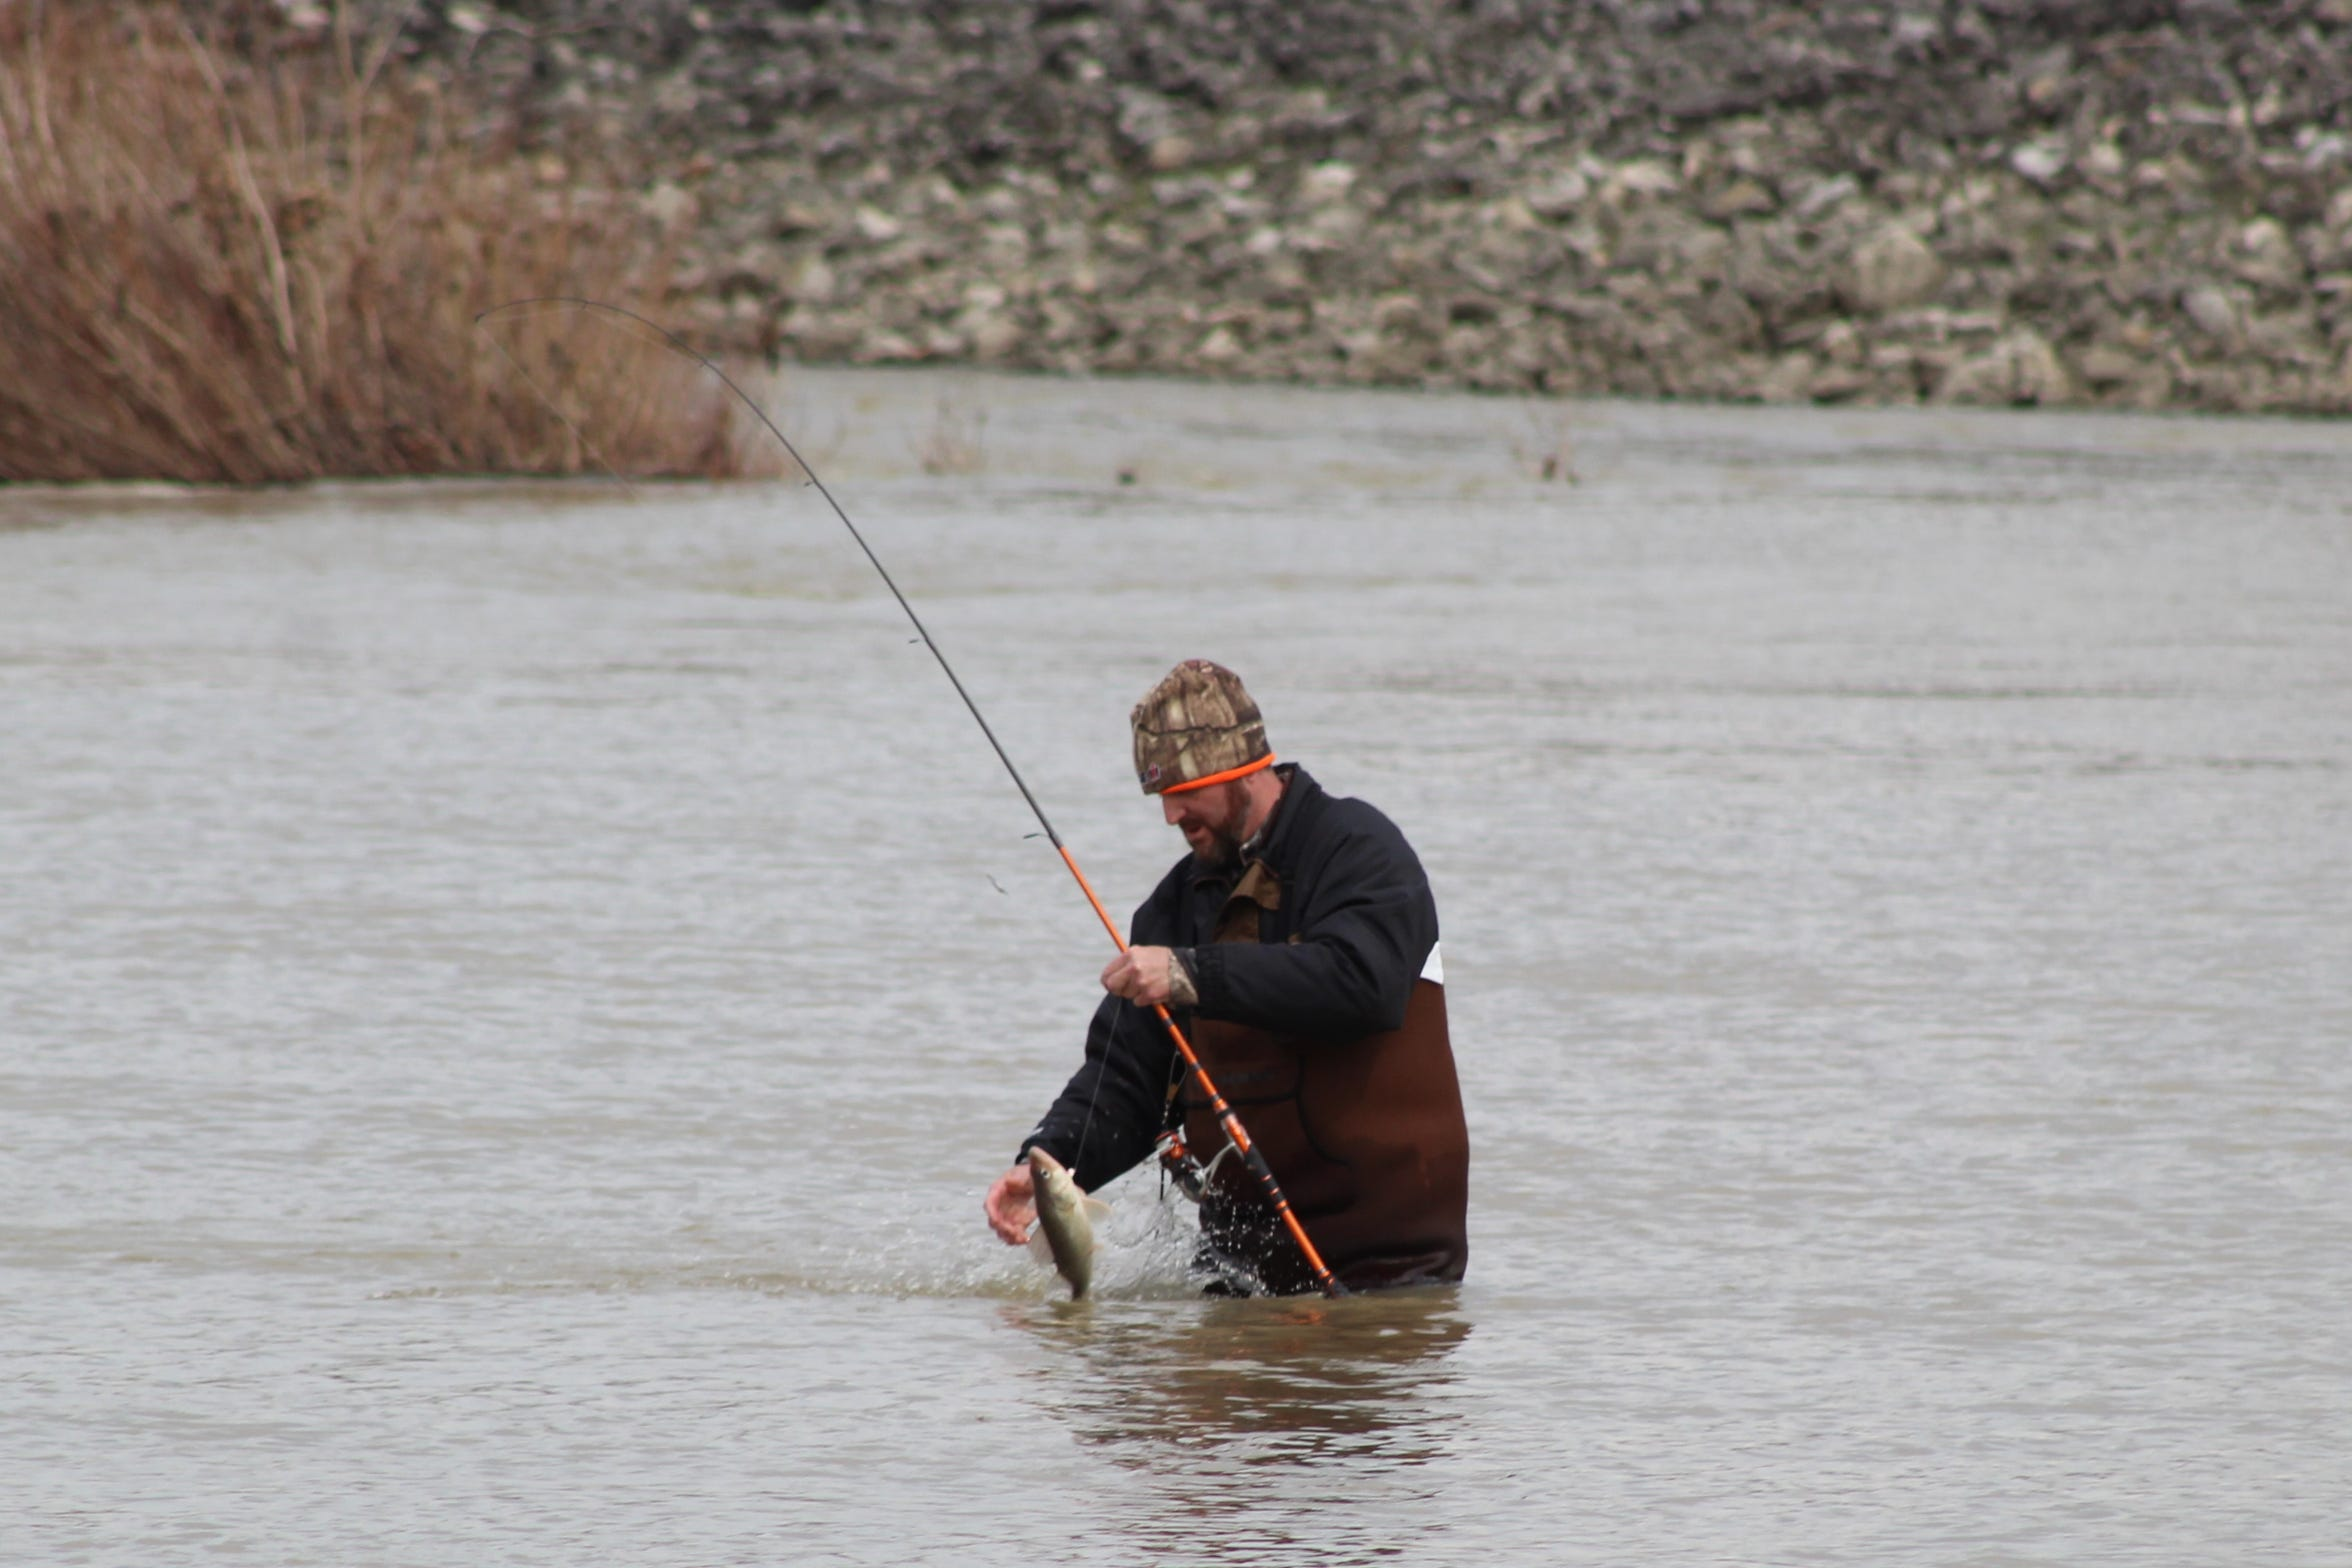 A lone fisherman catches a walleye in the Sandusky River Thursday in Fremont. The annual walleye run has continued to draw hundreds of visitors to Sandusky County this year, even as the state deals with coronavirus fears.